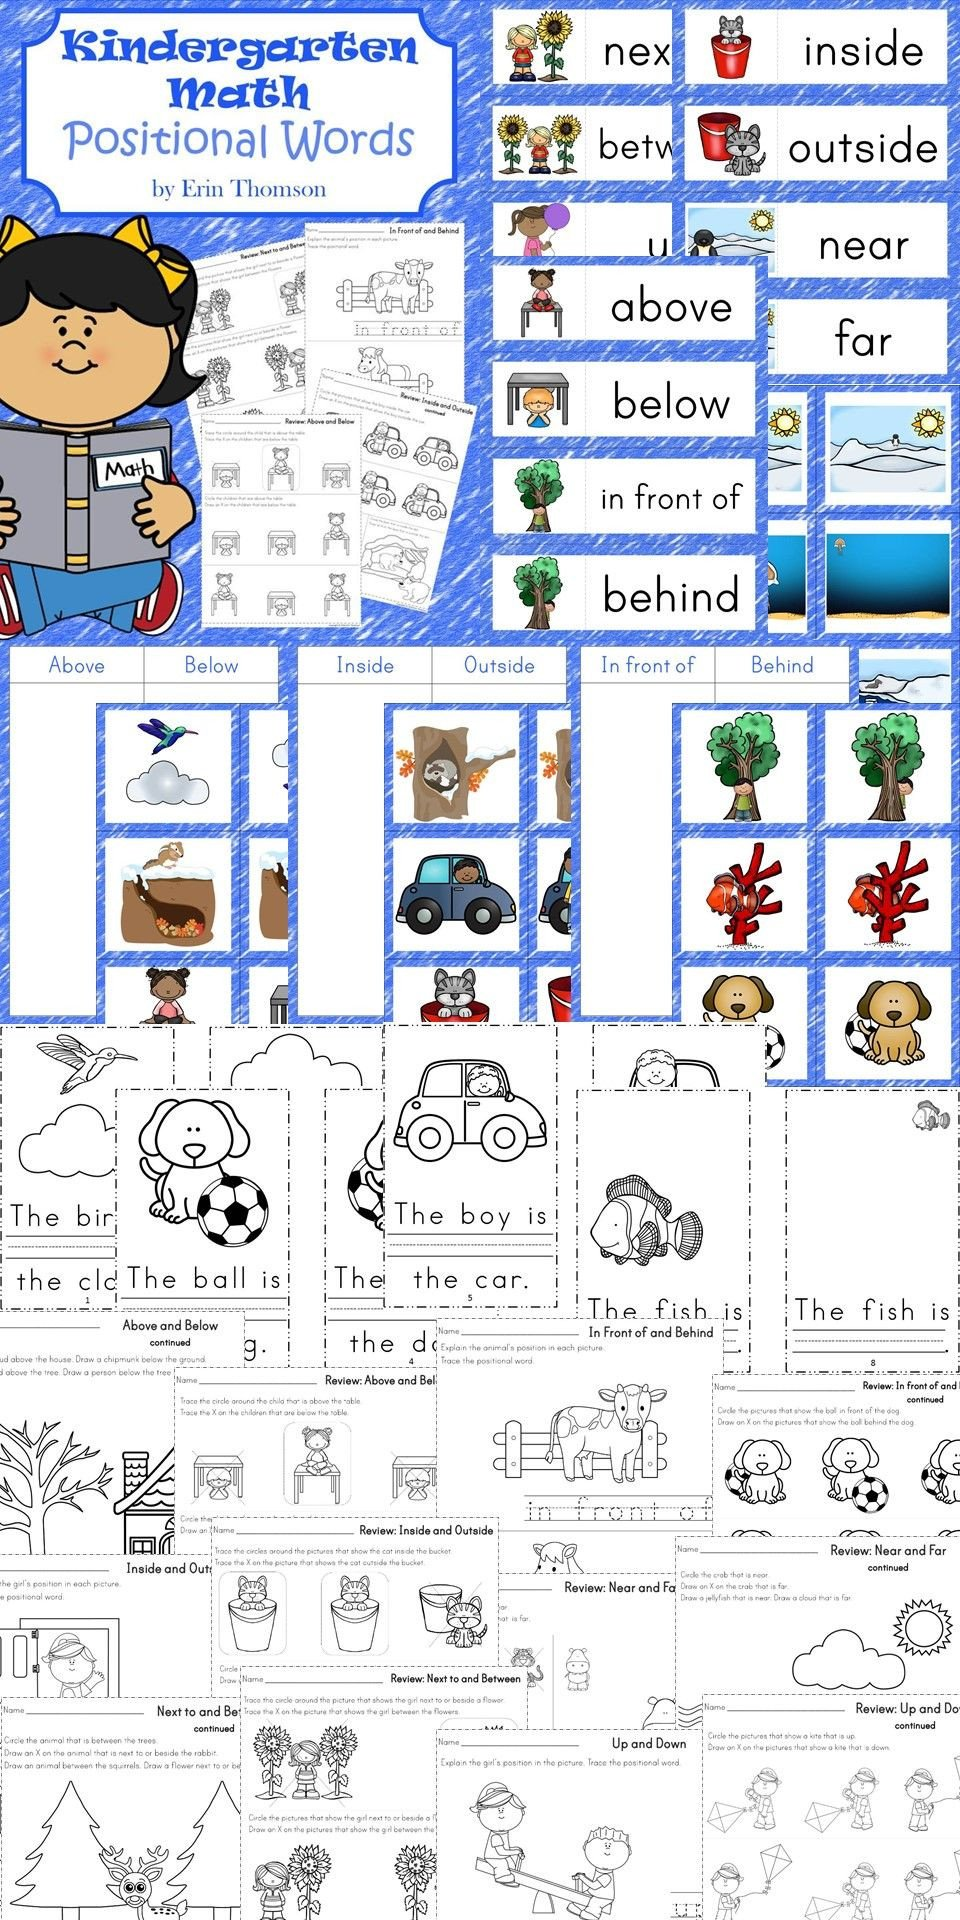 Positional Words Worksheets Worksheets sorting Cards and Books to Teach Positional